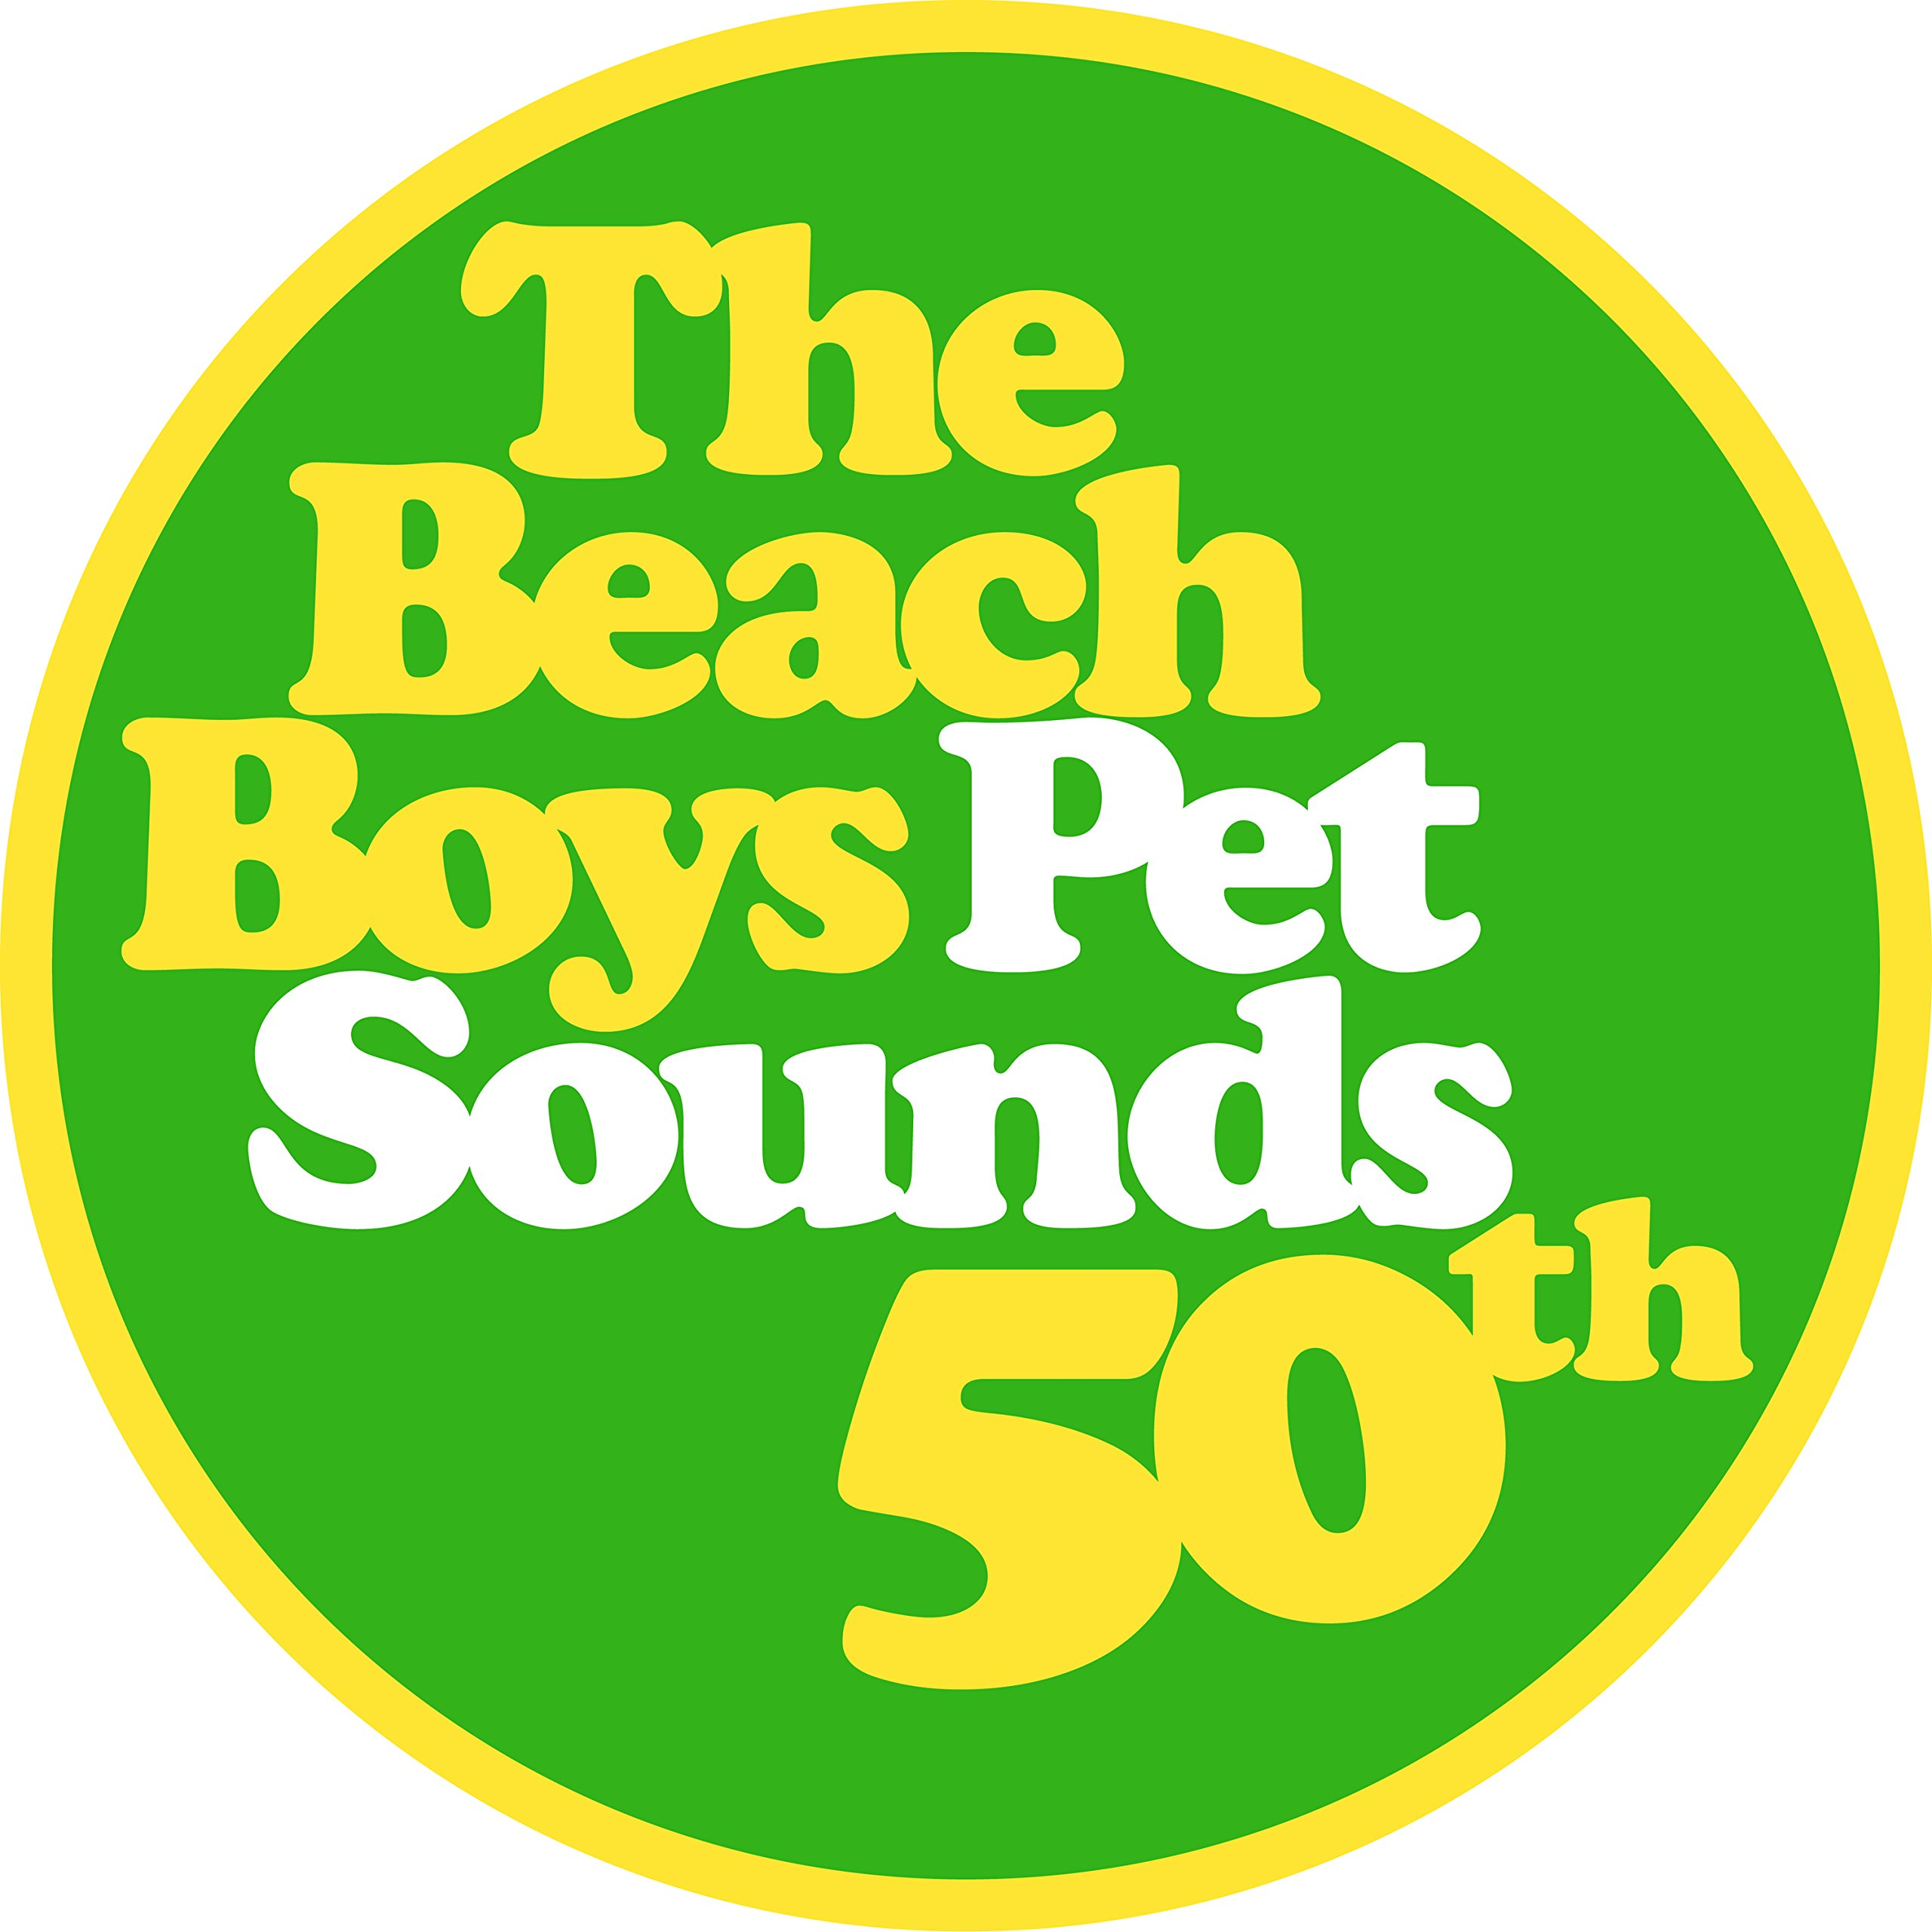 Pet Sounds [Stereo LP] by Universal Music Group